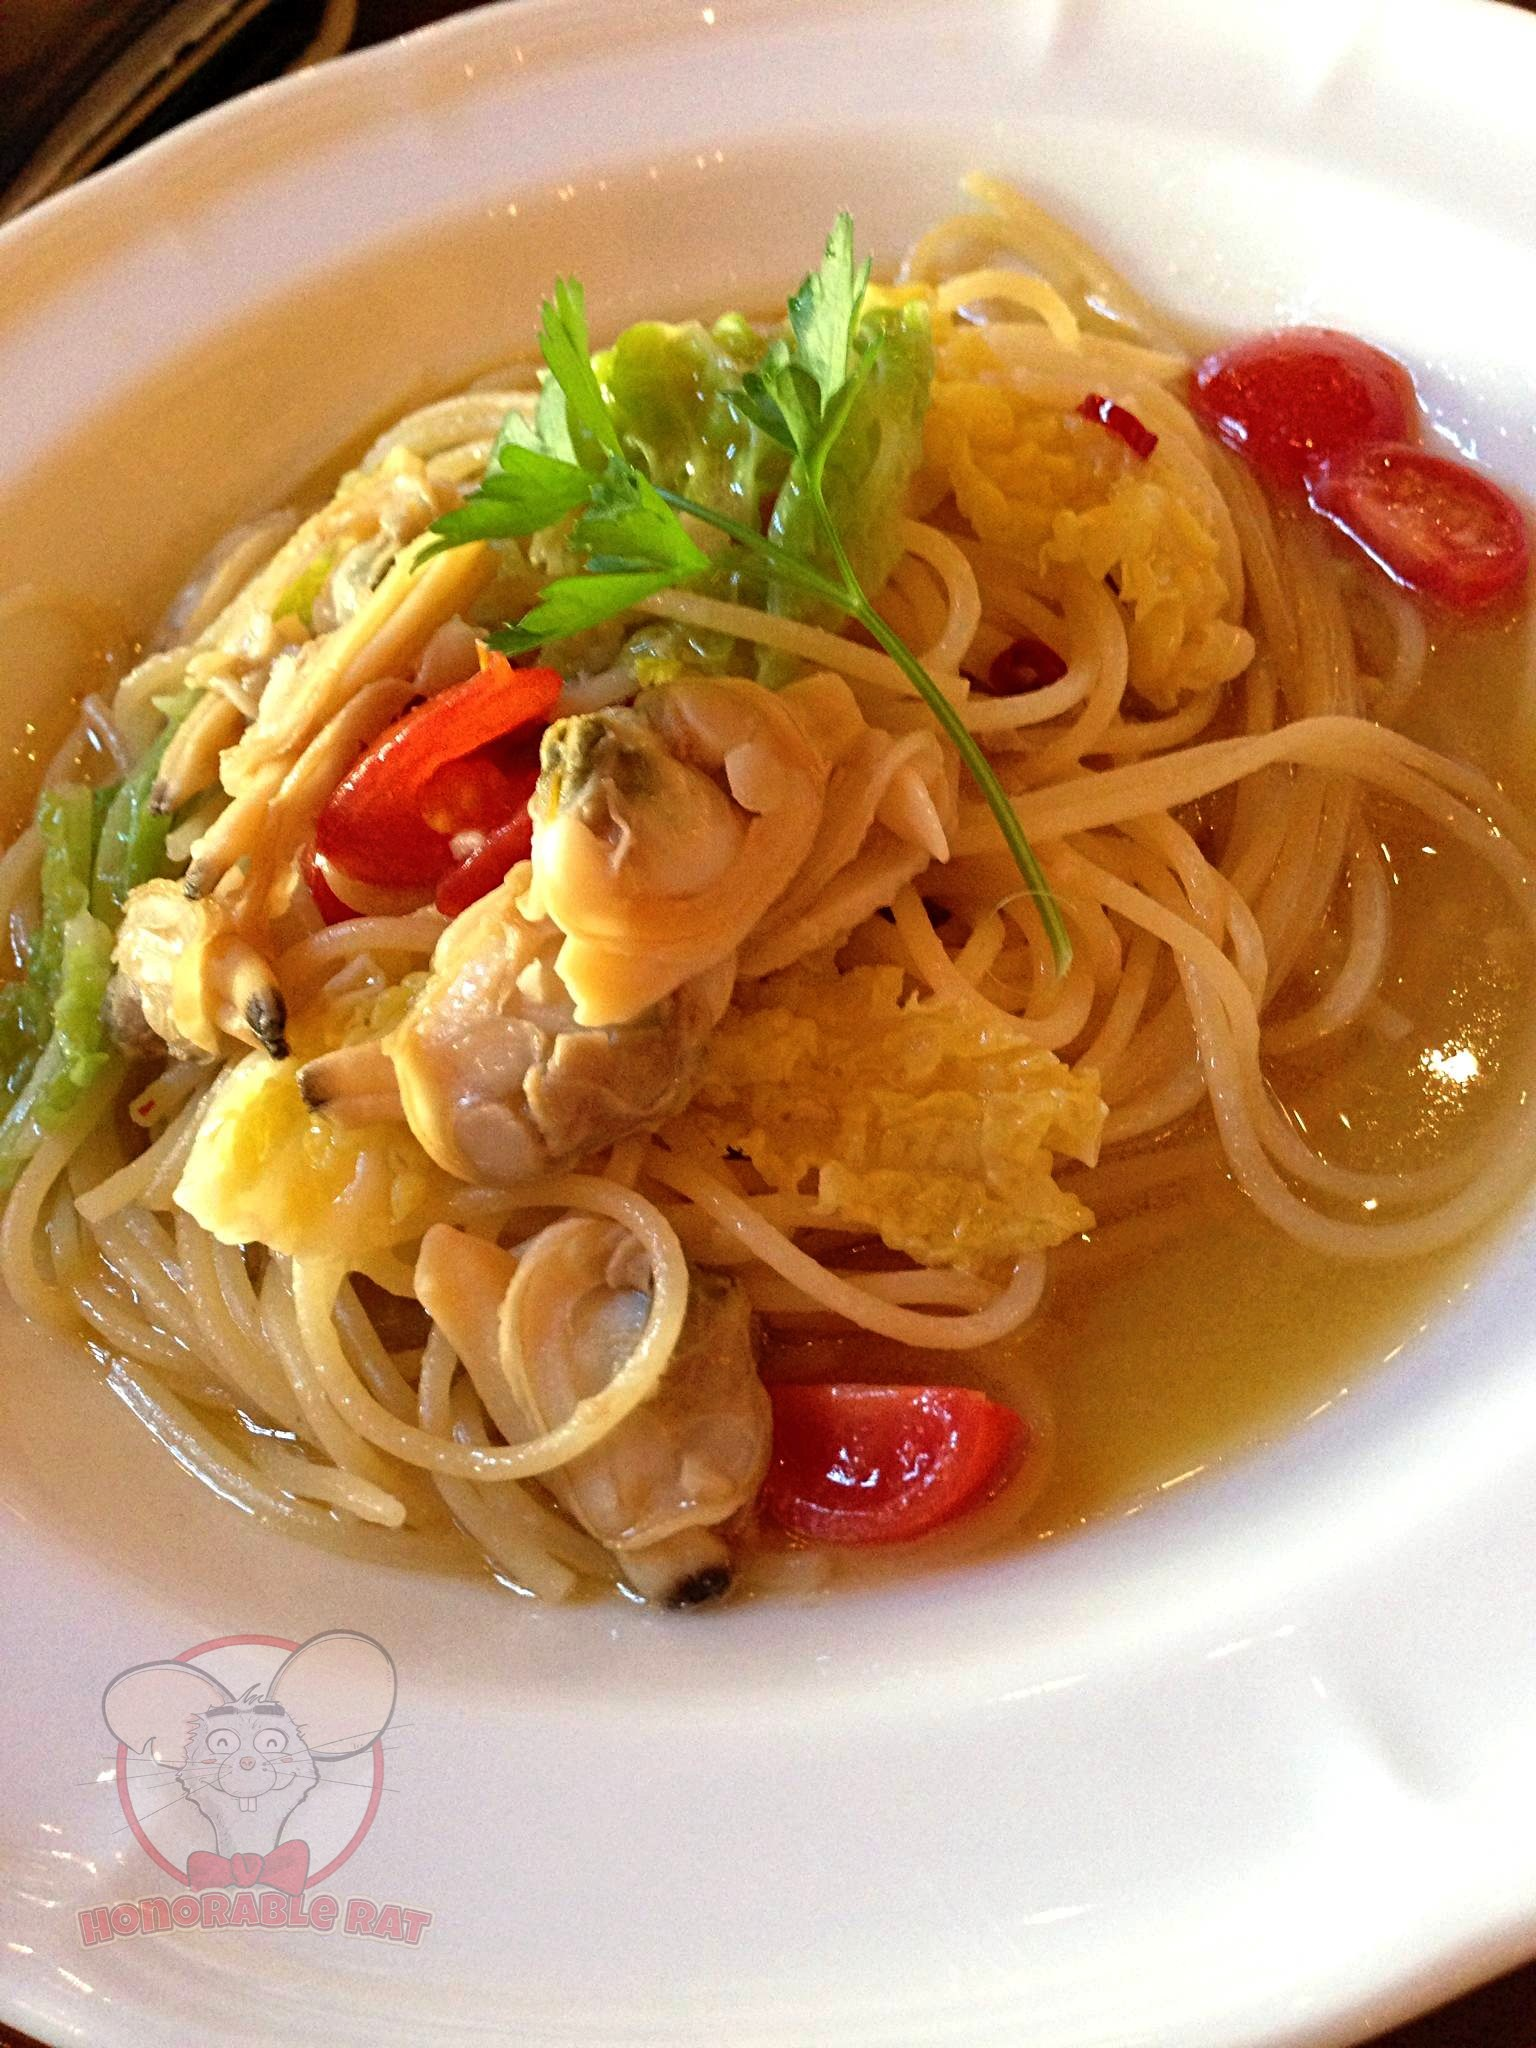 Spaghettini with Shortneck Clams and Savoy Cabbage in Anchovy Sauce